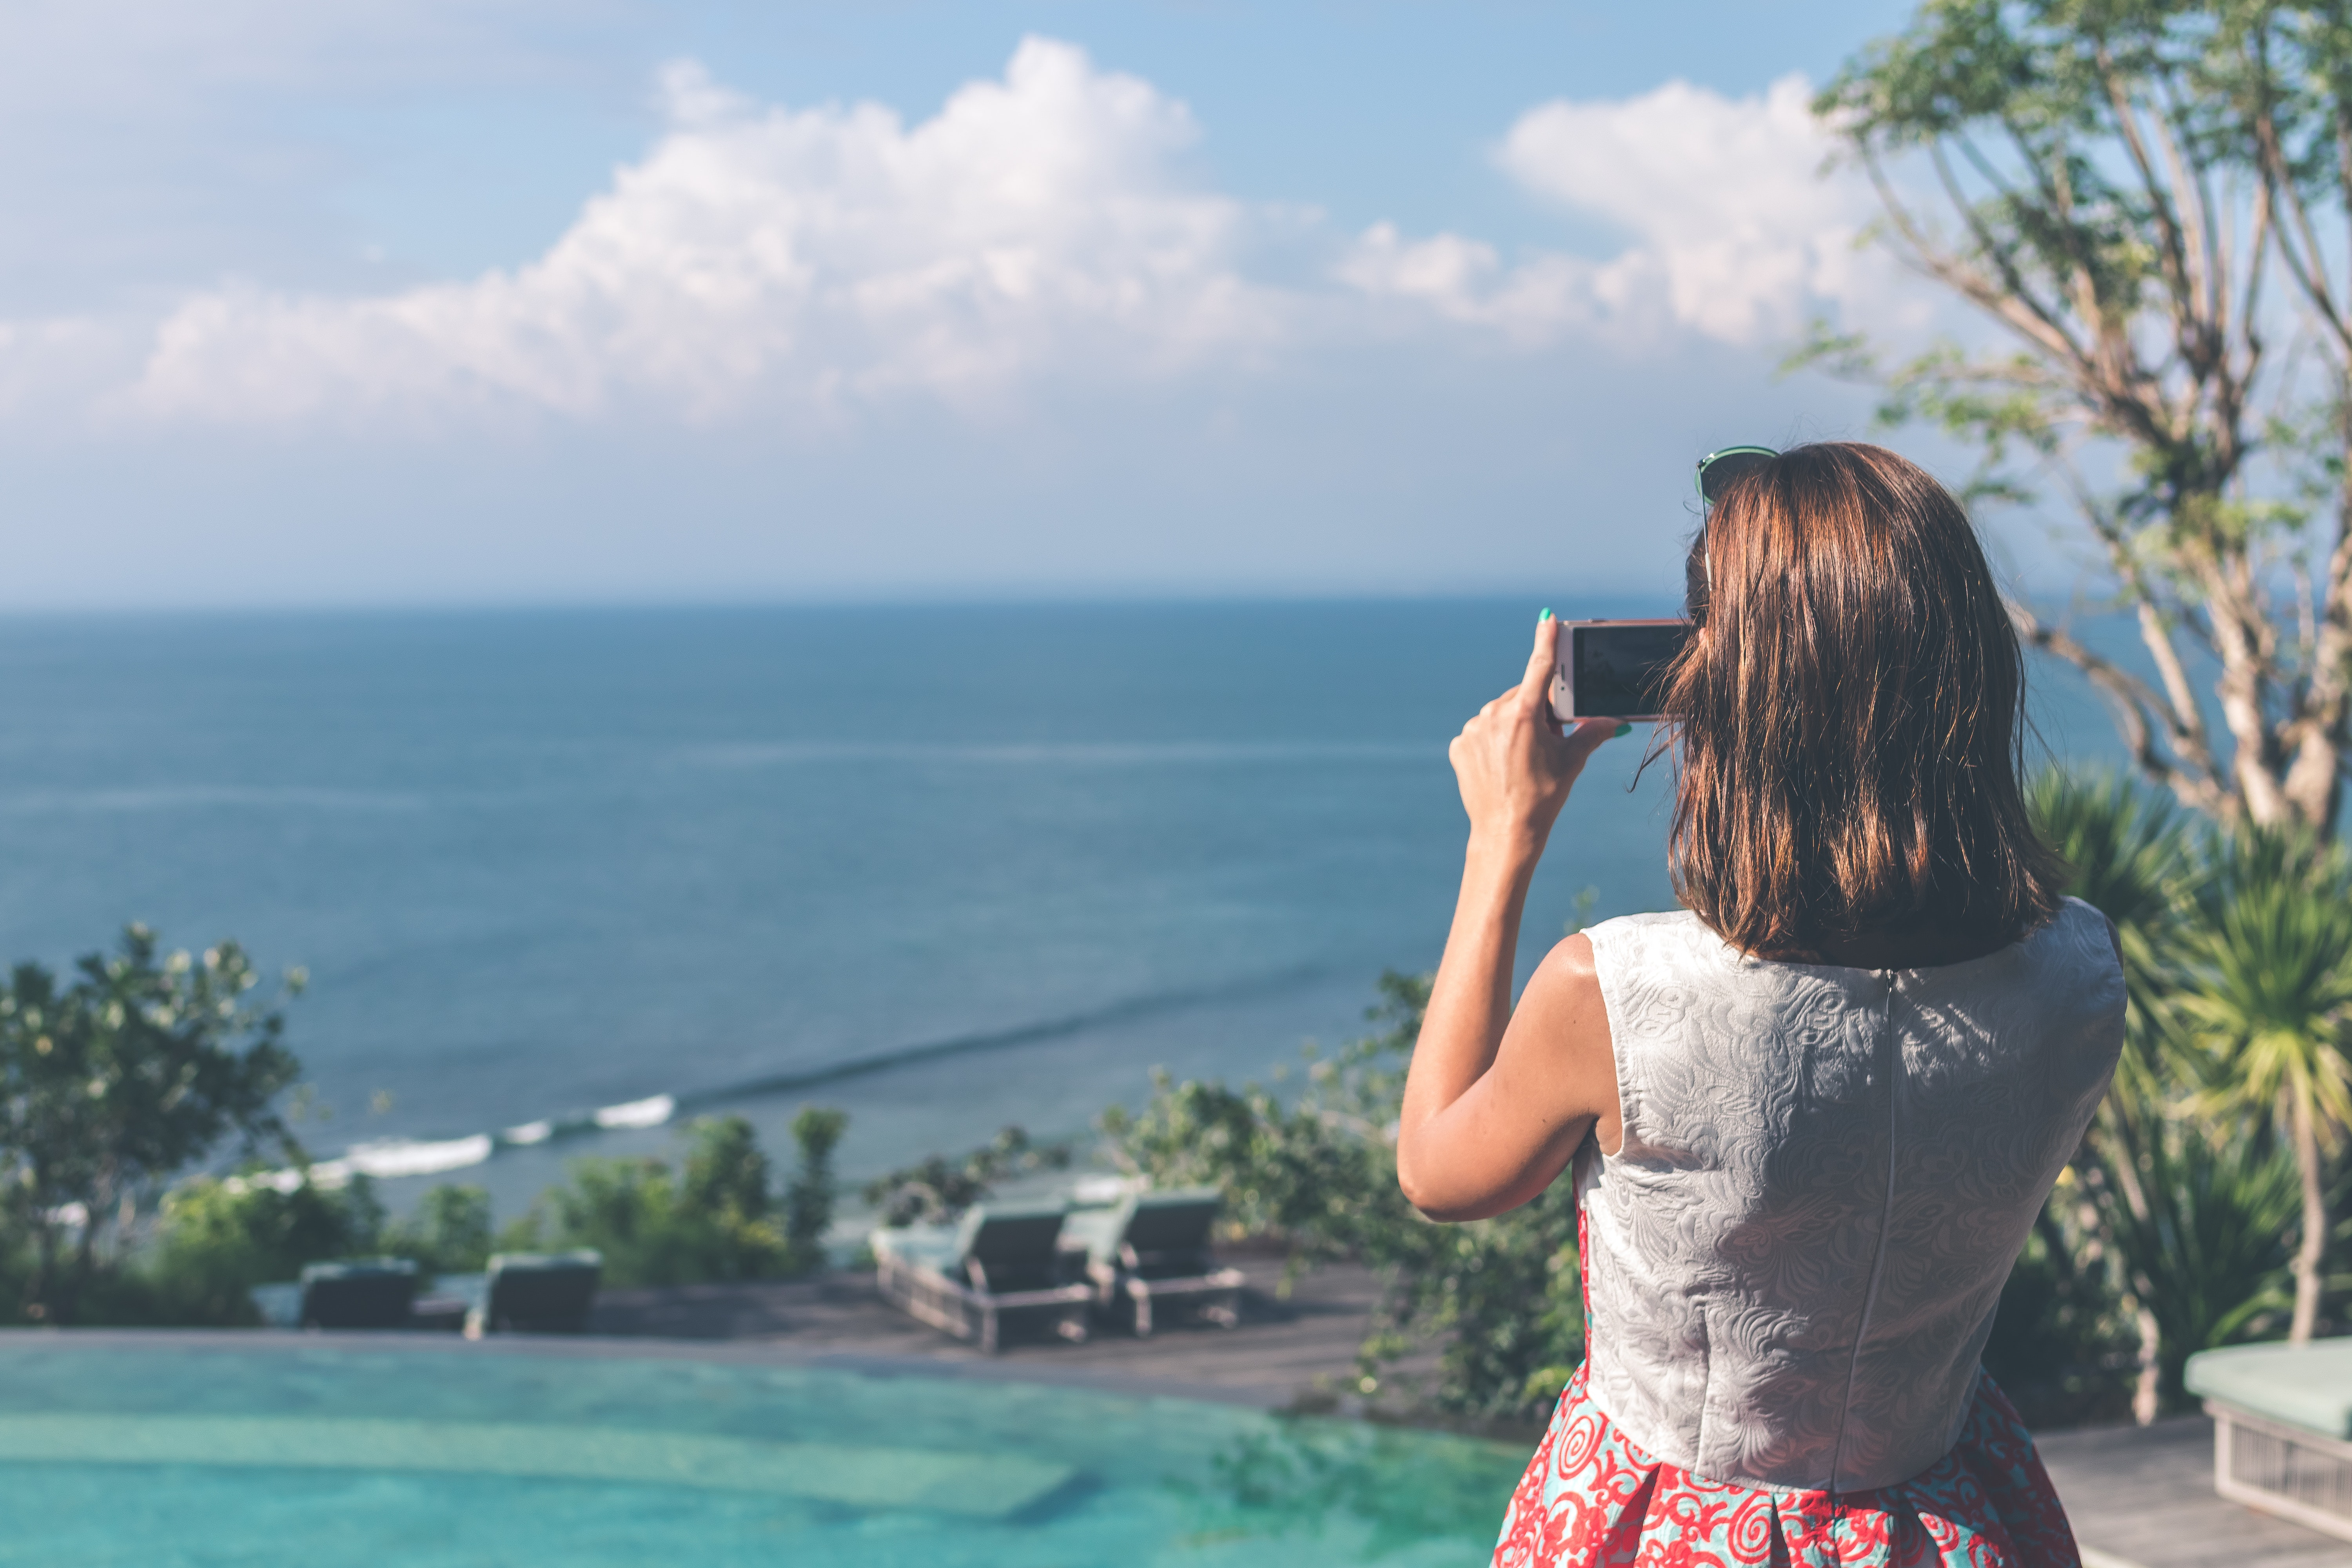 Woman Wearing White and Red Sleeveless Dress Taking Photo of Beach, Beach, Smartphone, Photography, Portable, HQ Photo